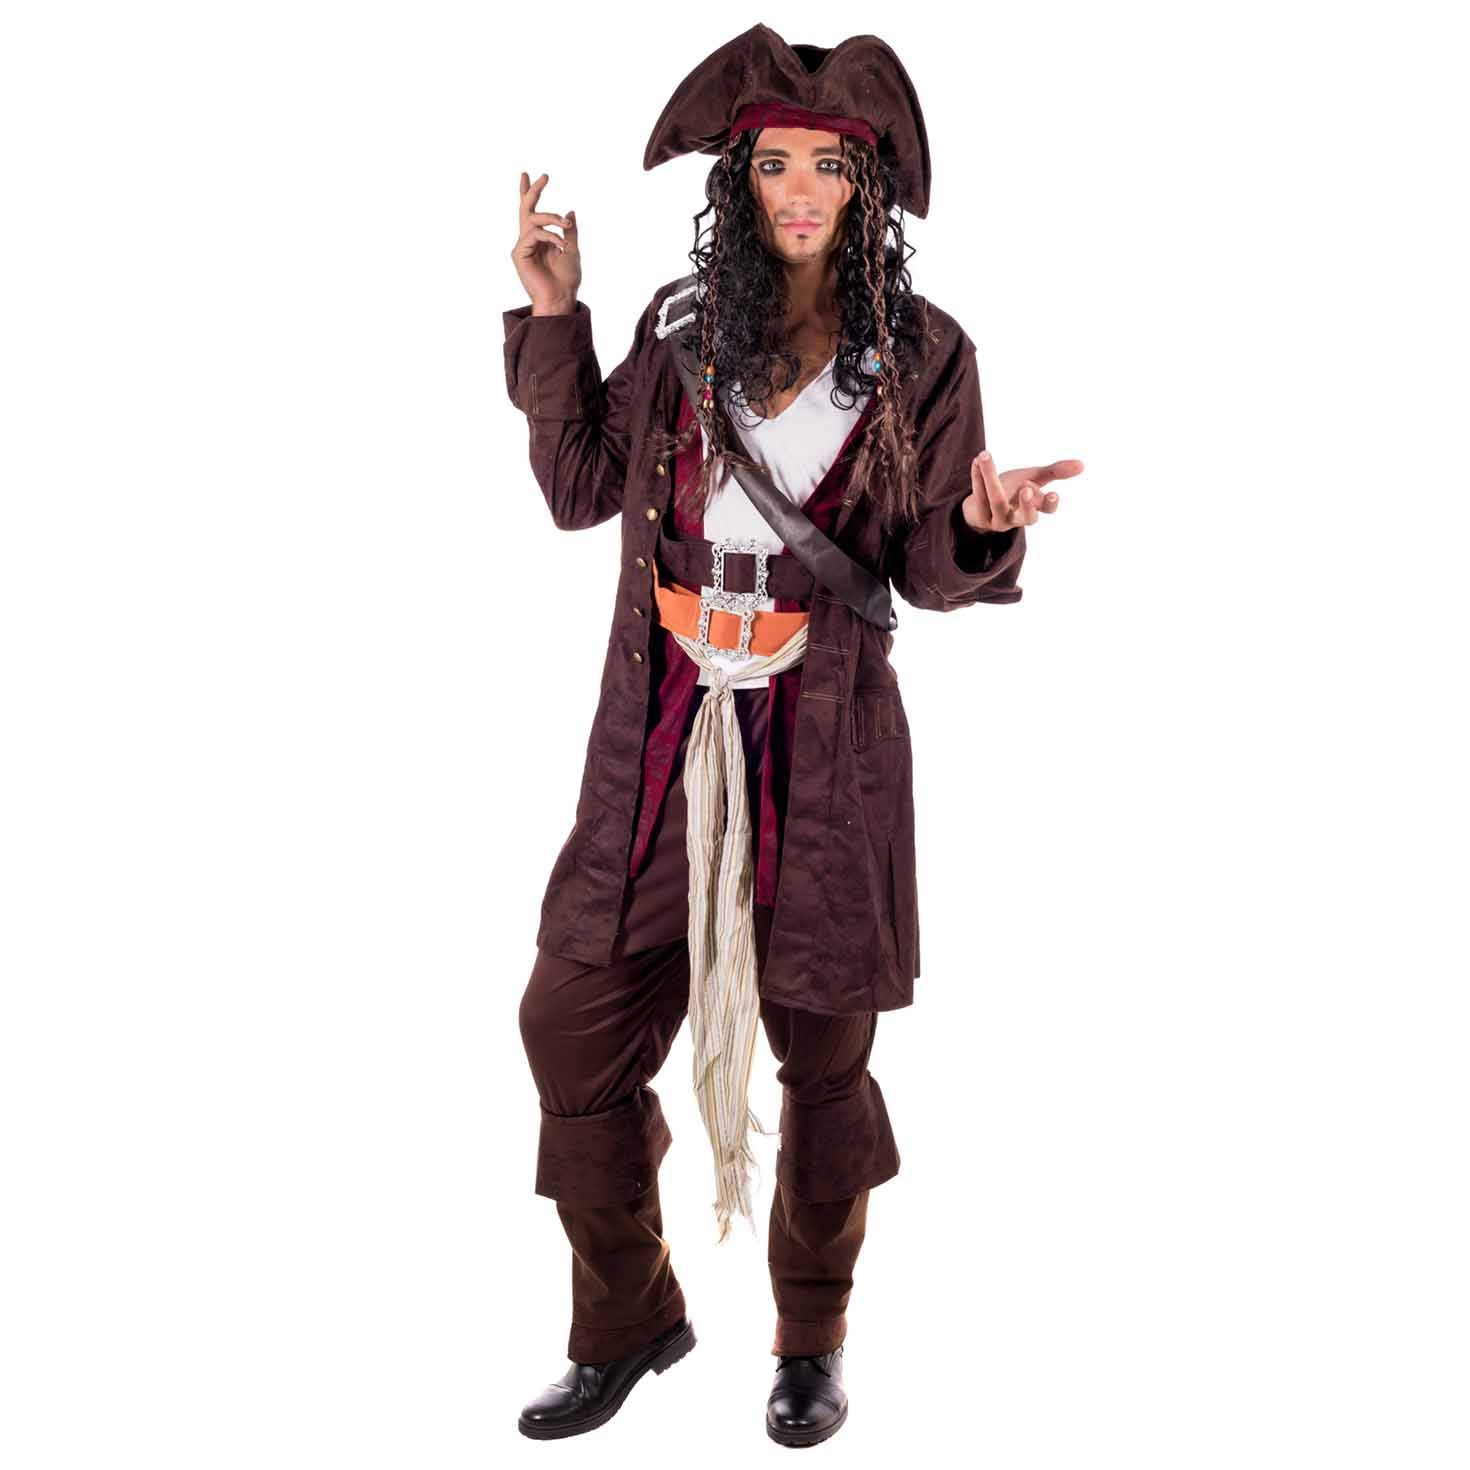 70cm Caribbean Buccaneer Pirate Sword Medieval Aged Effect Costume Accessory